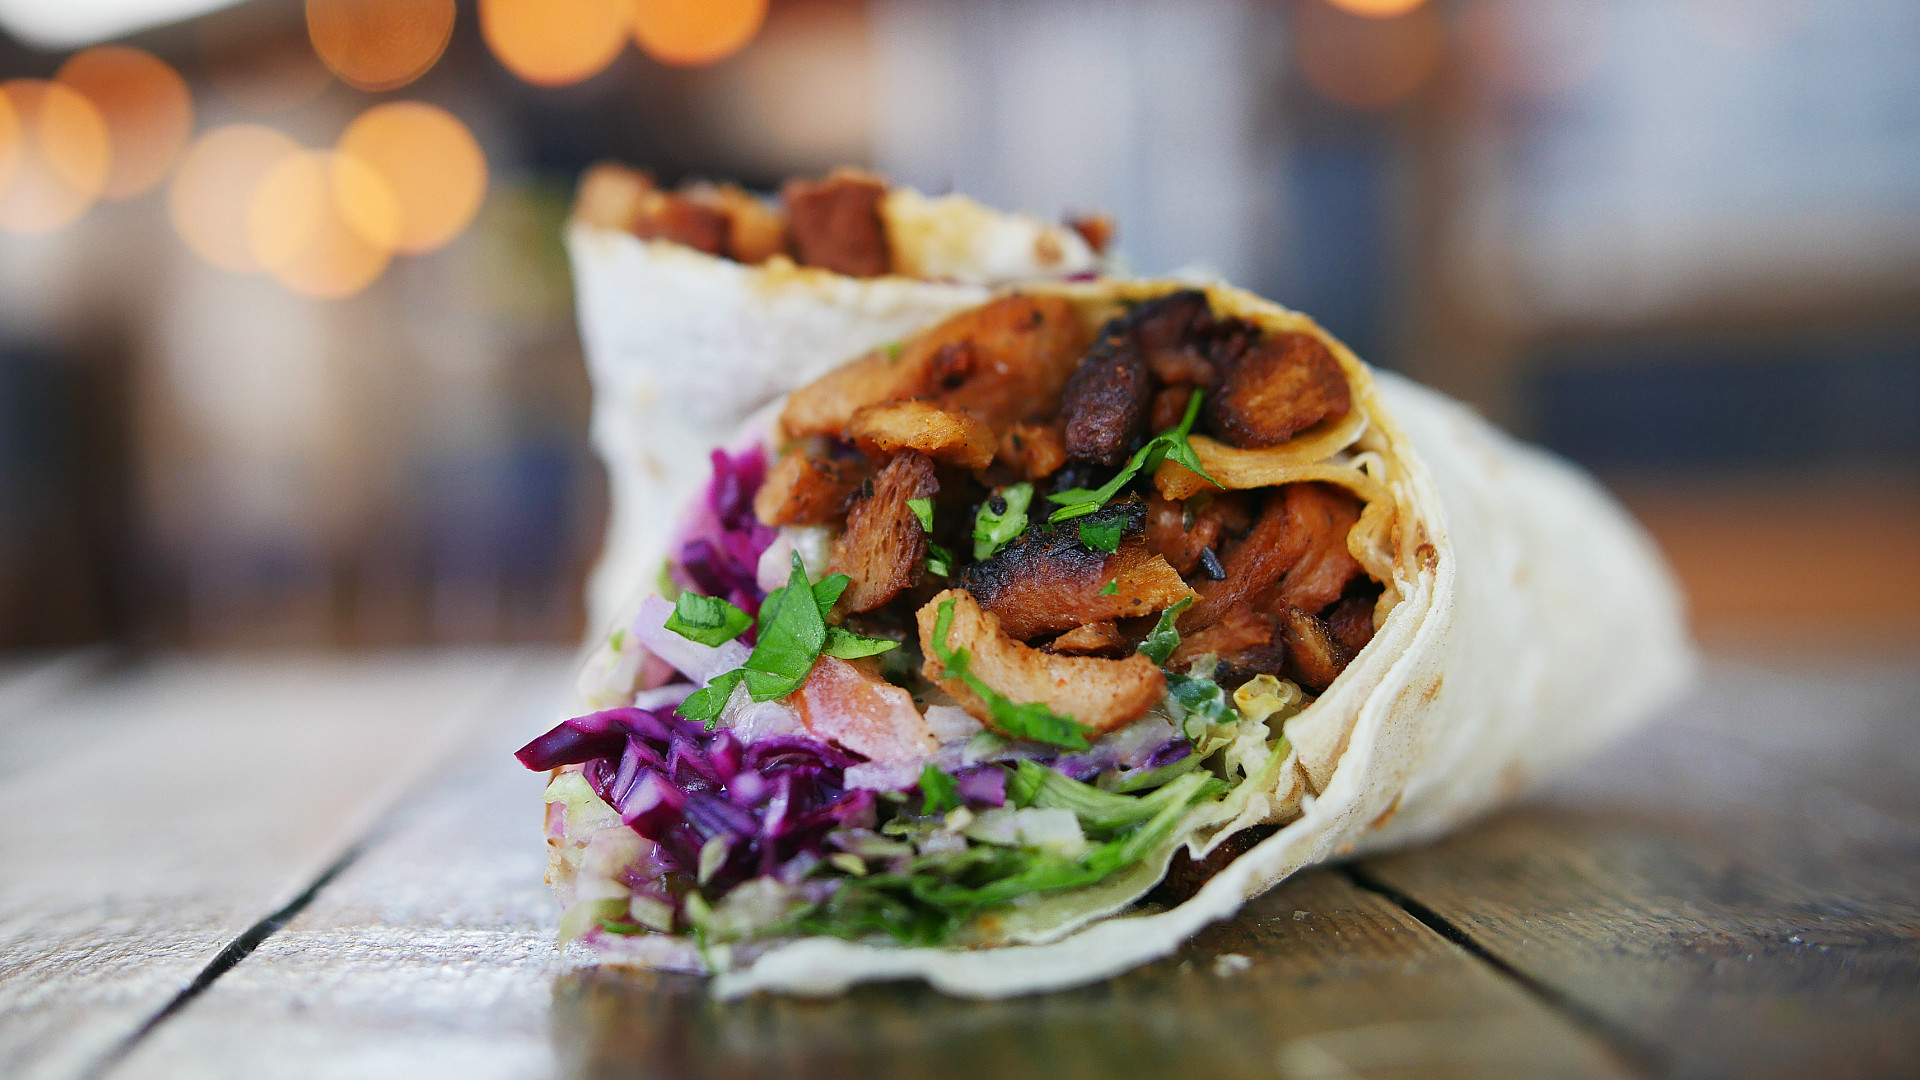 What the Pitta! offers all-vegan kebabs